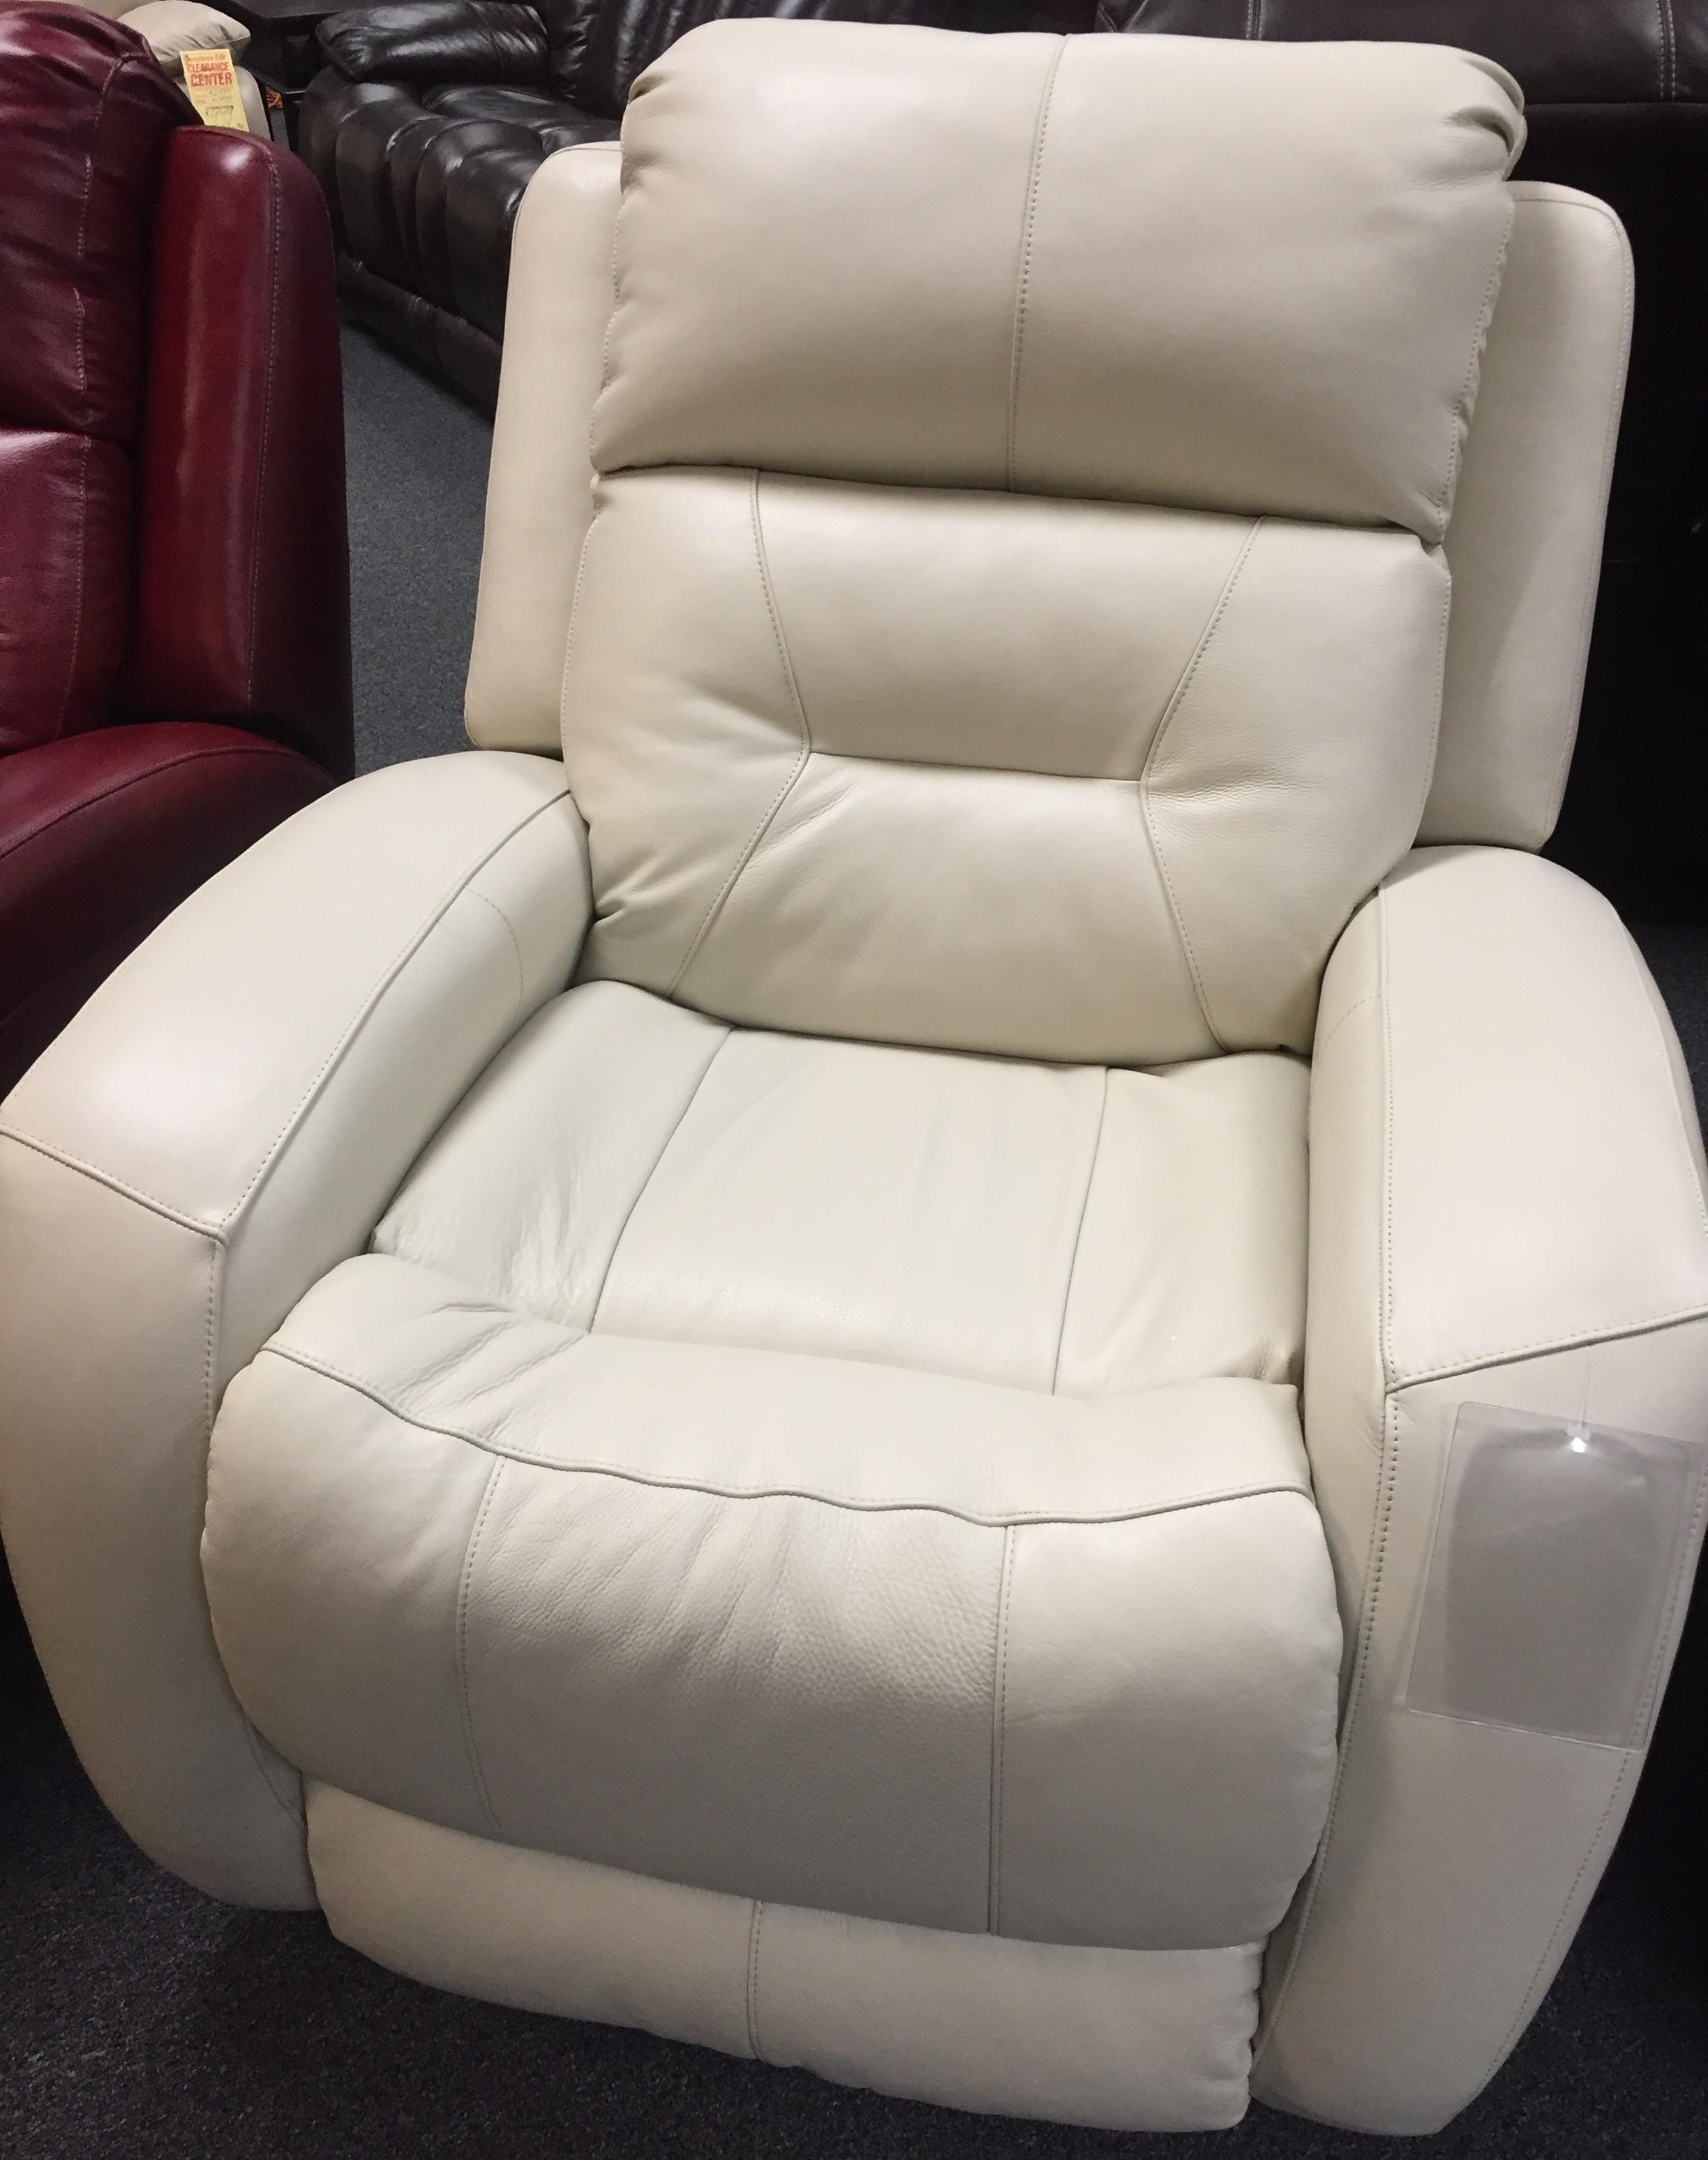 Southern Motion 1316 Cream Leather Recliner - Item Number: 1316Cream